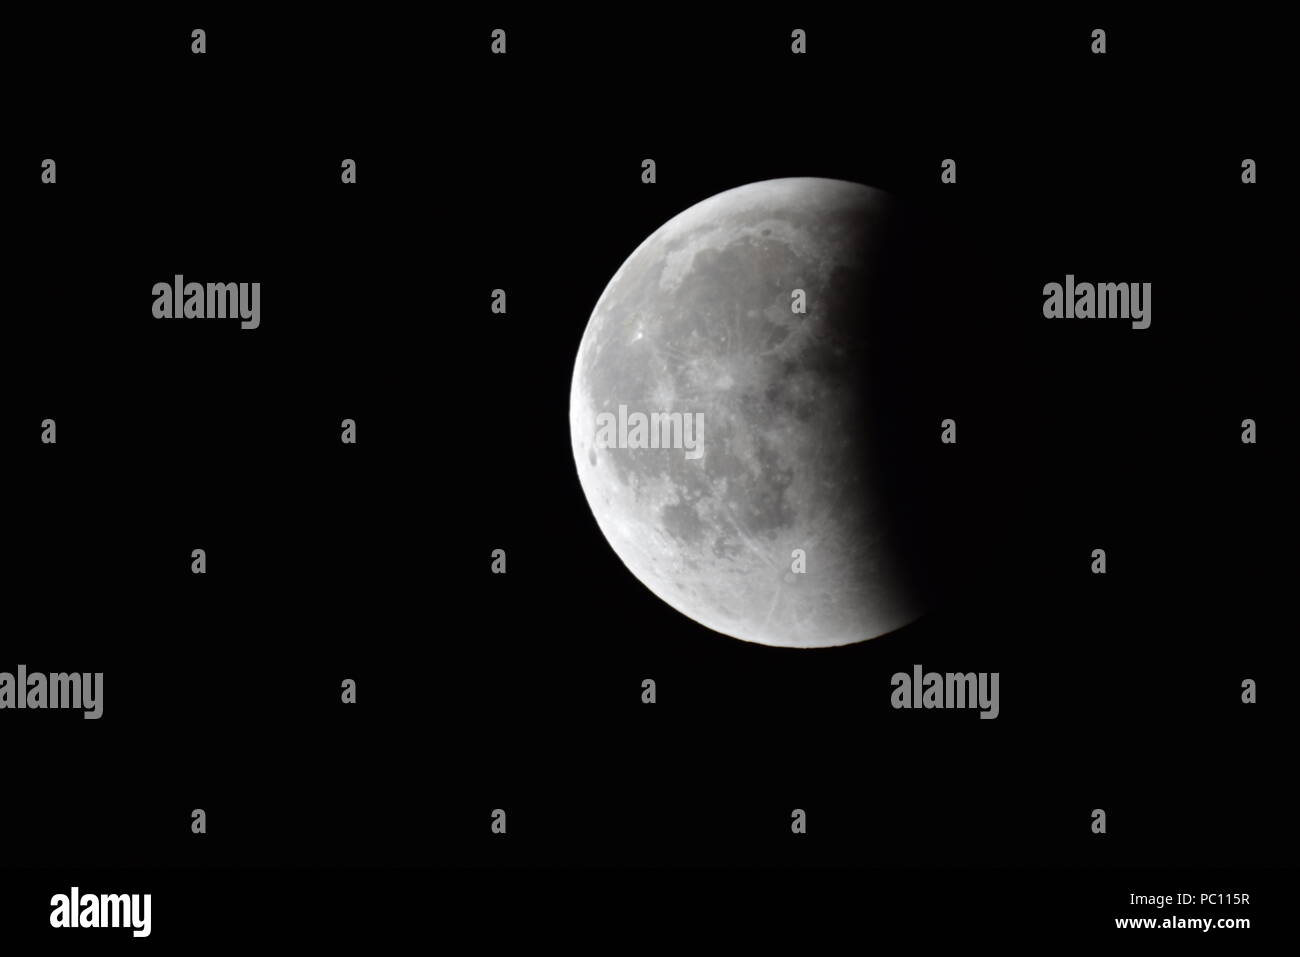 Moon Eclipse Closeup Showing The Details Of Lunar Surface Moon Eclipse Stock Photo Alamy